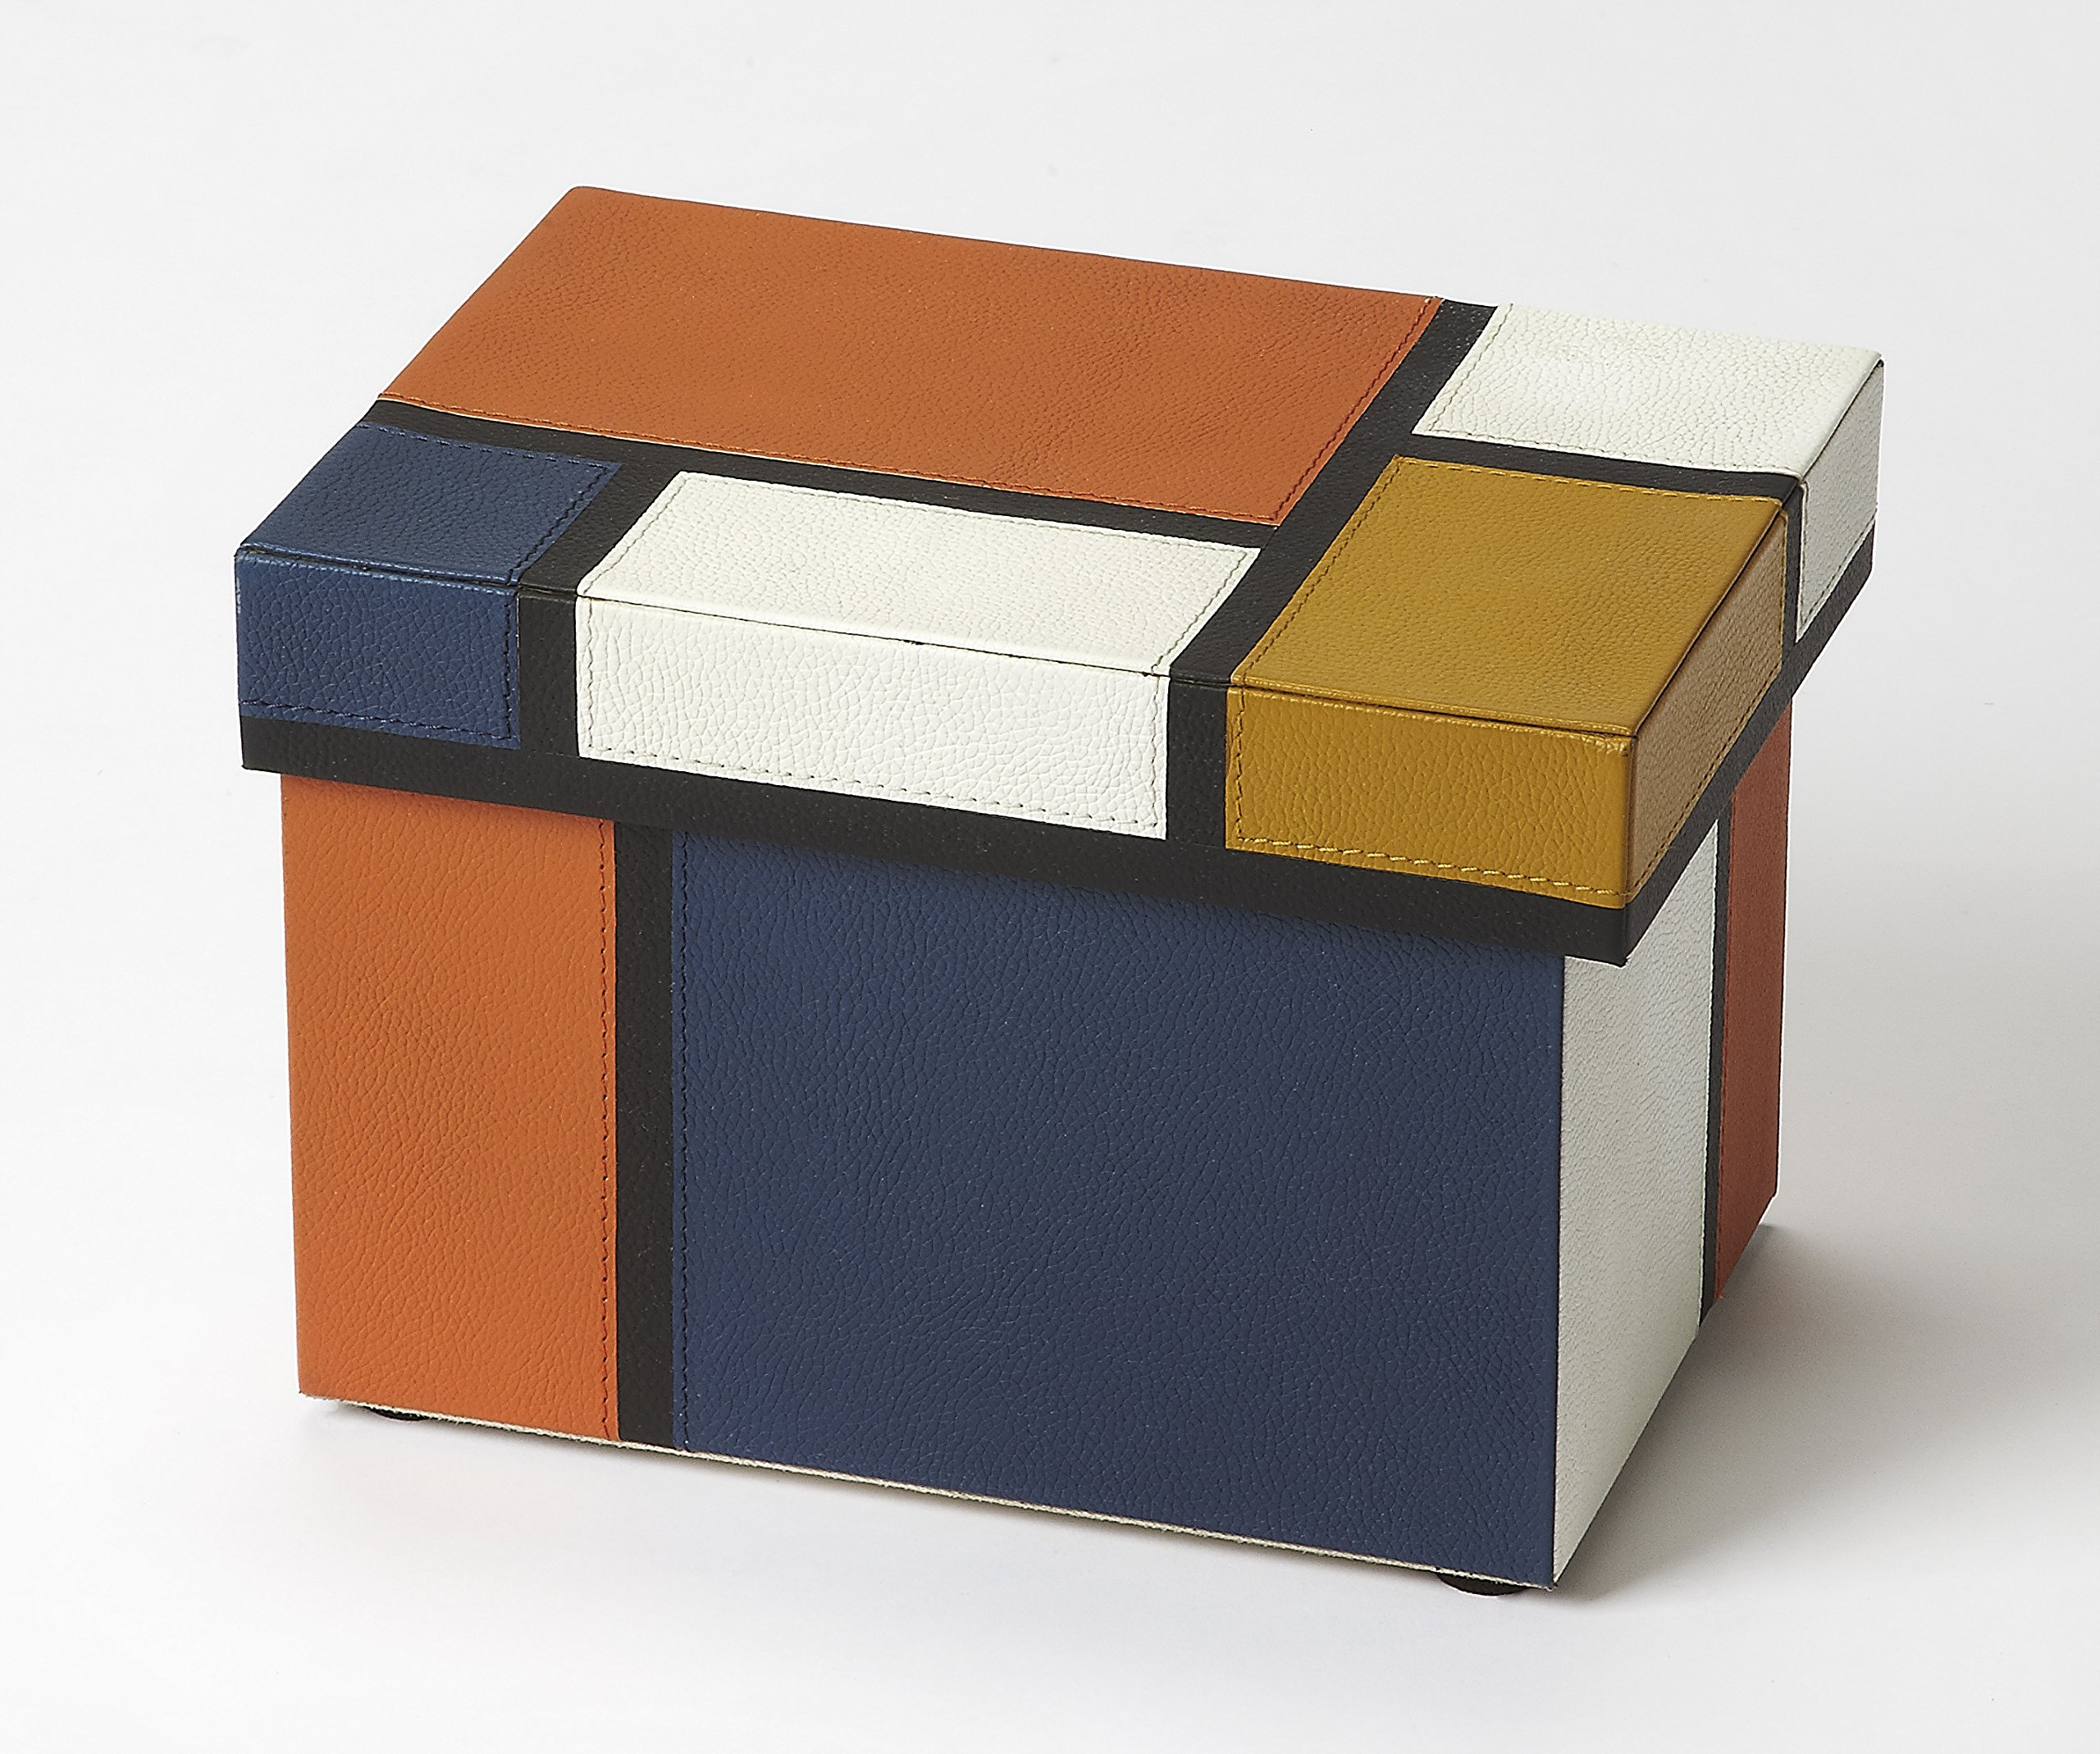 Butler specality company BUTLER 3902016 MOSAIC LEATHER STORAGE BOX